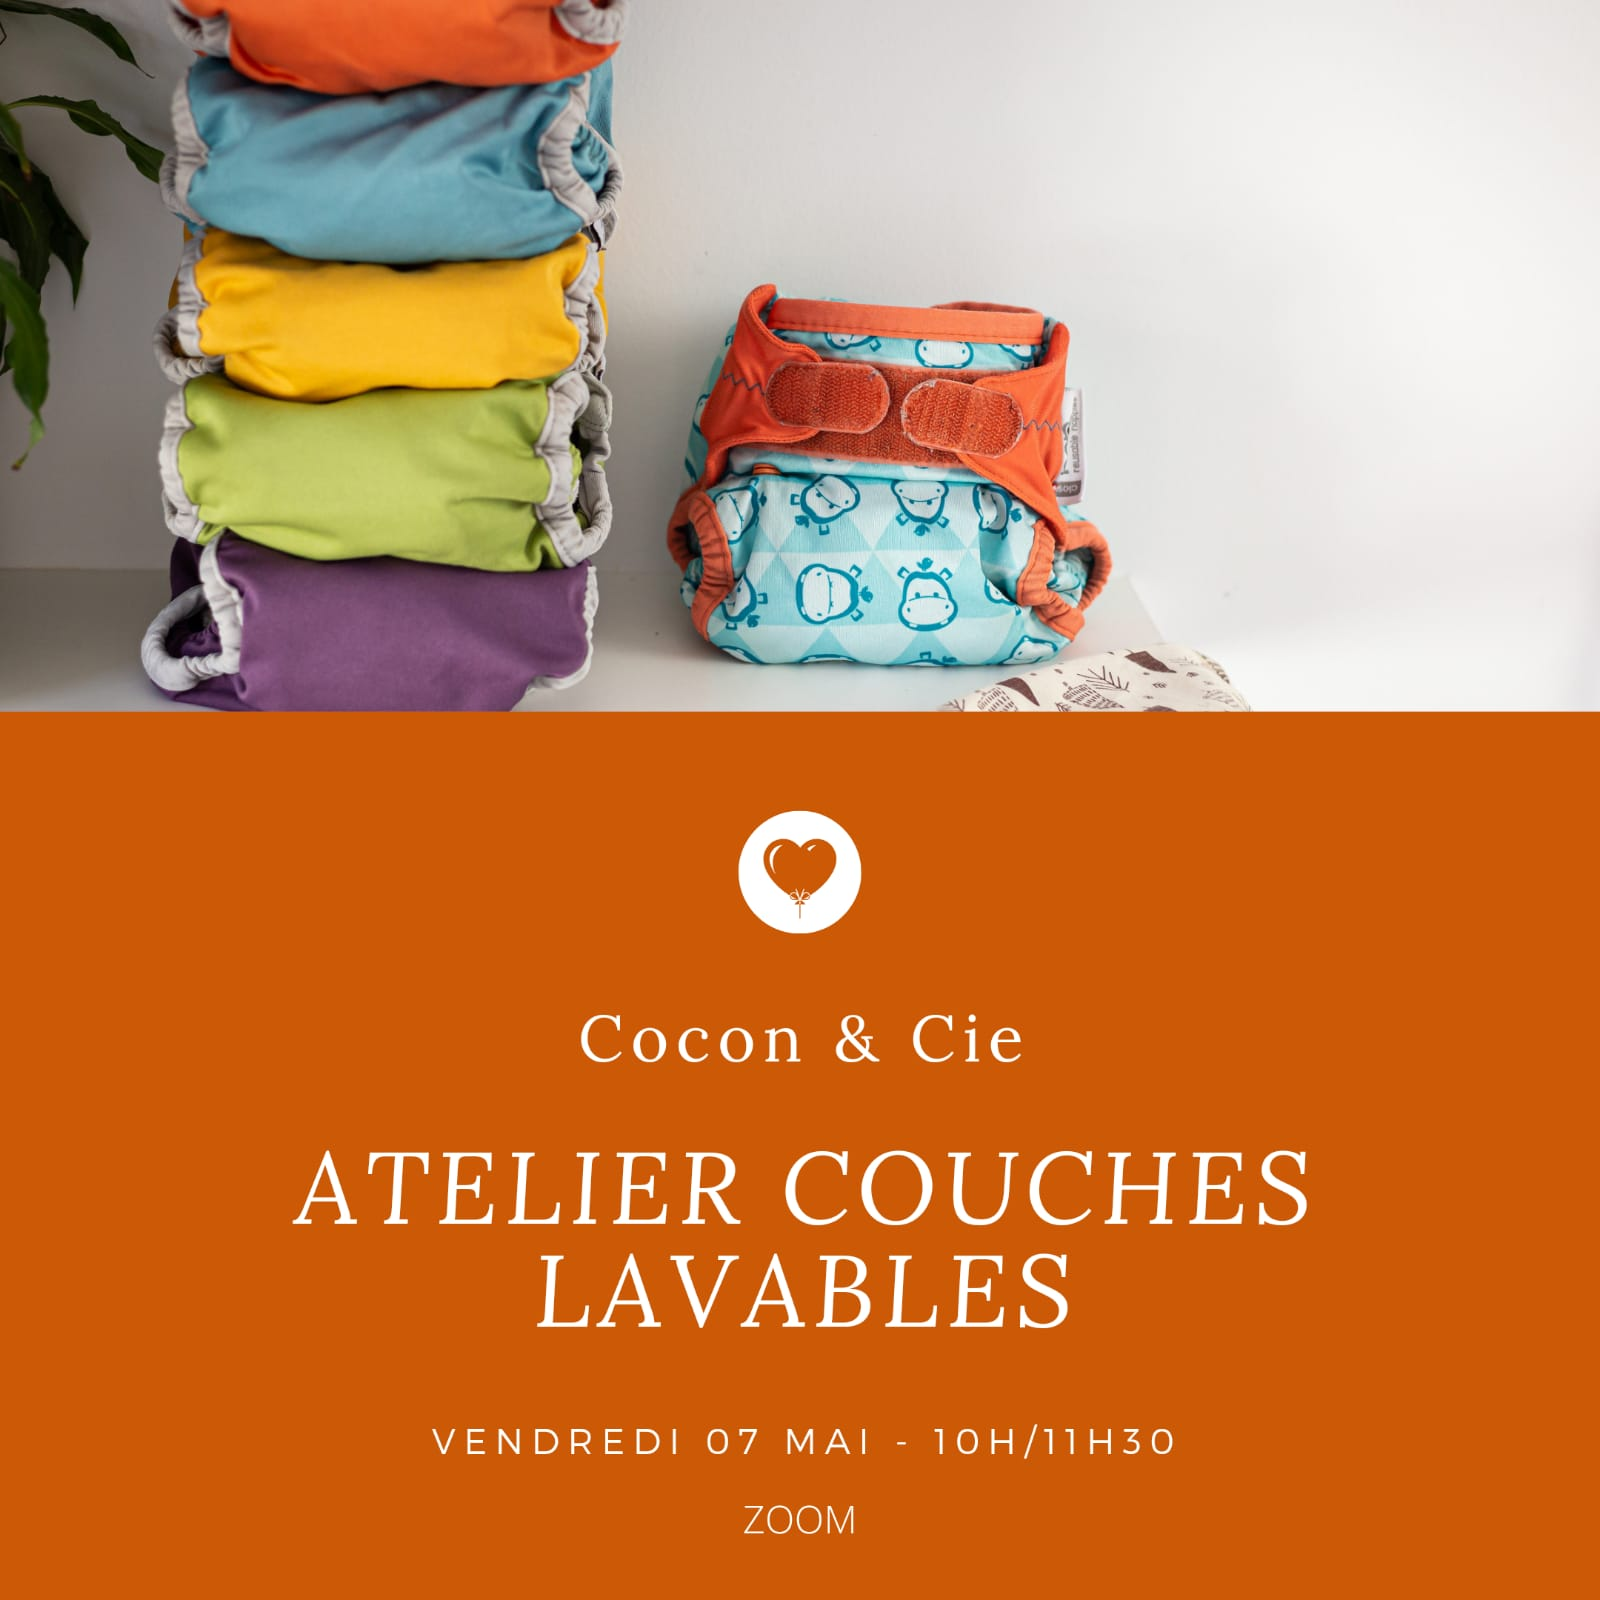 atelier-couches-lavables_07052021